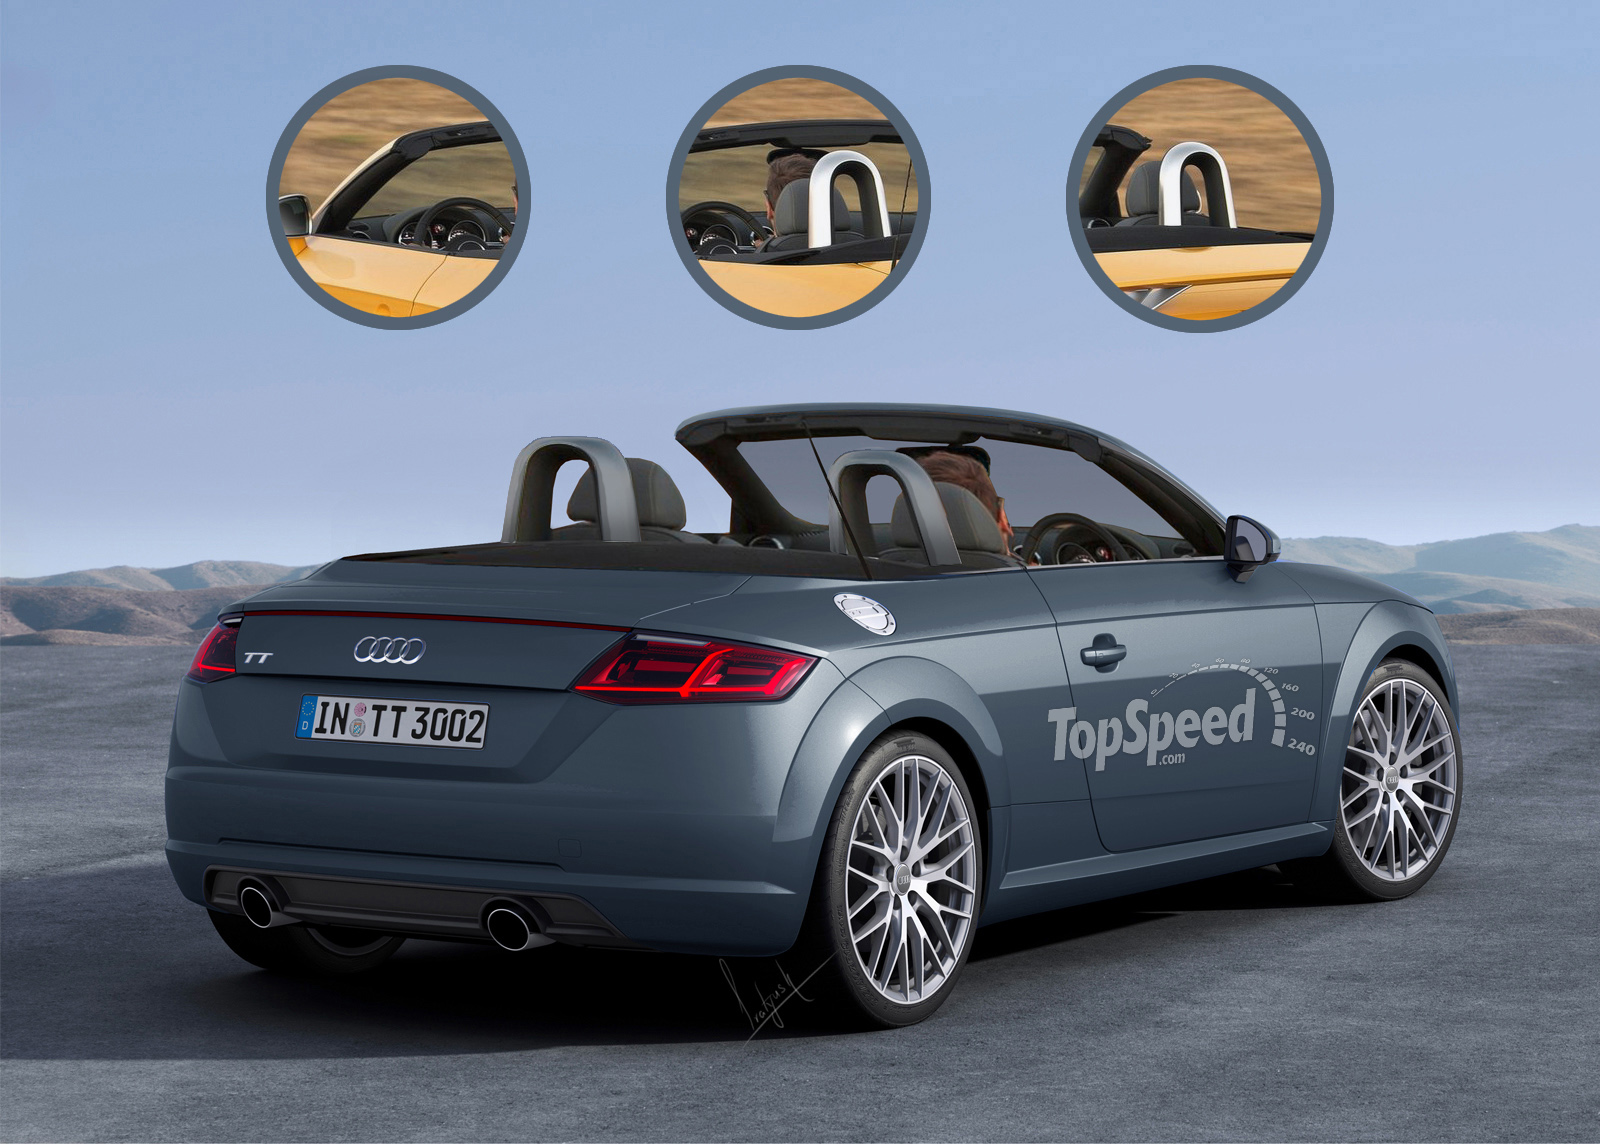 2016 Audi TT Roadster | Top Speed. »